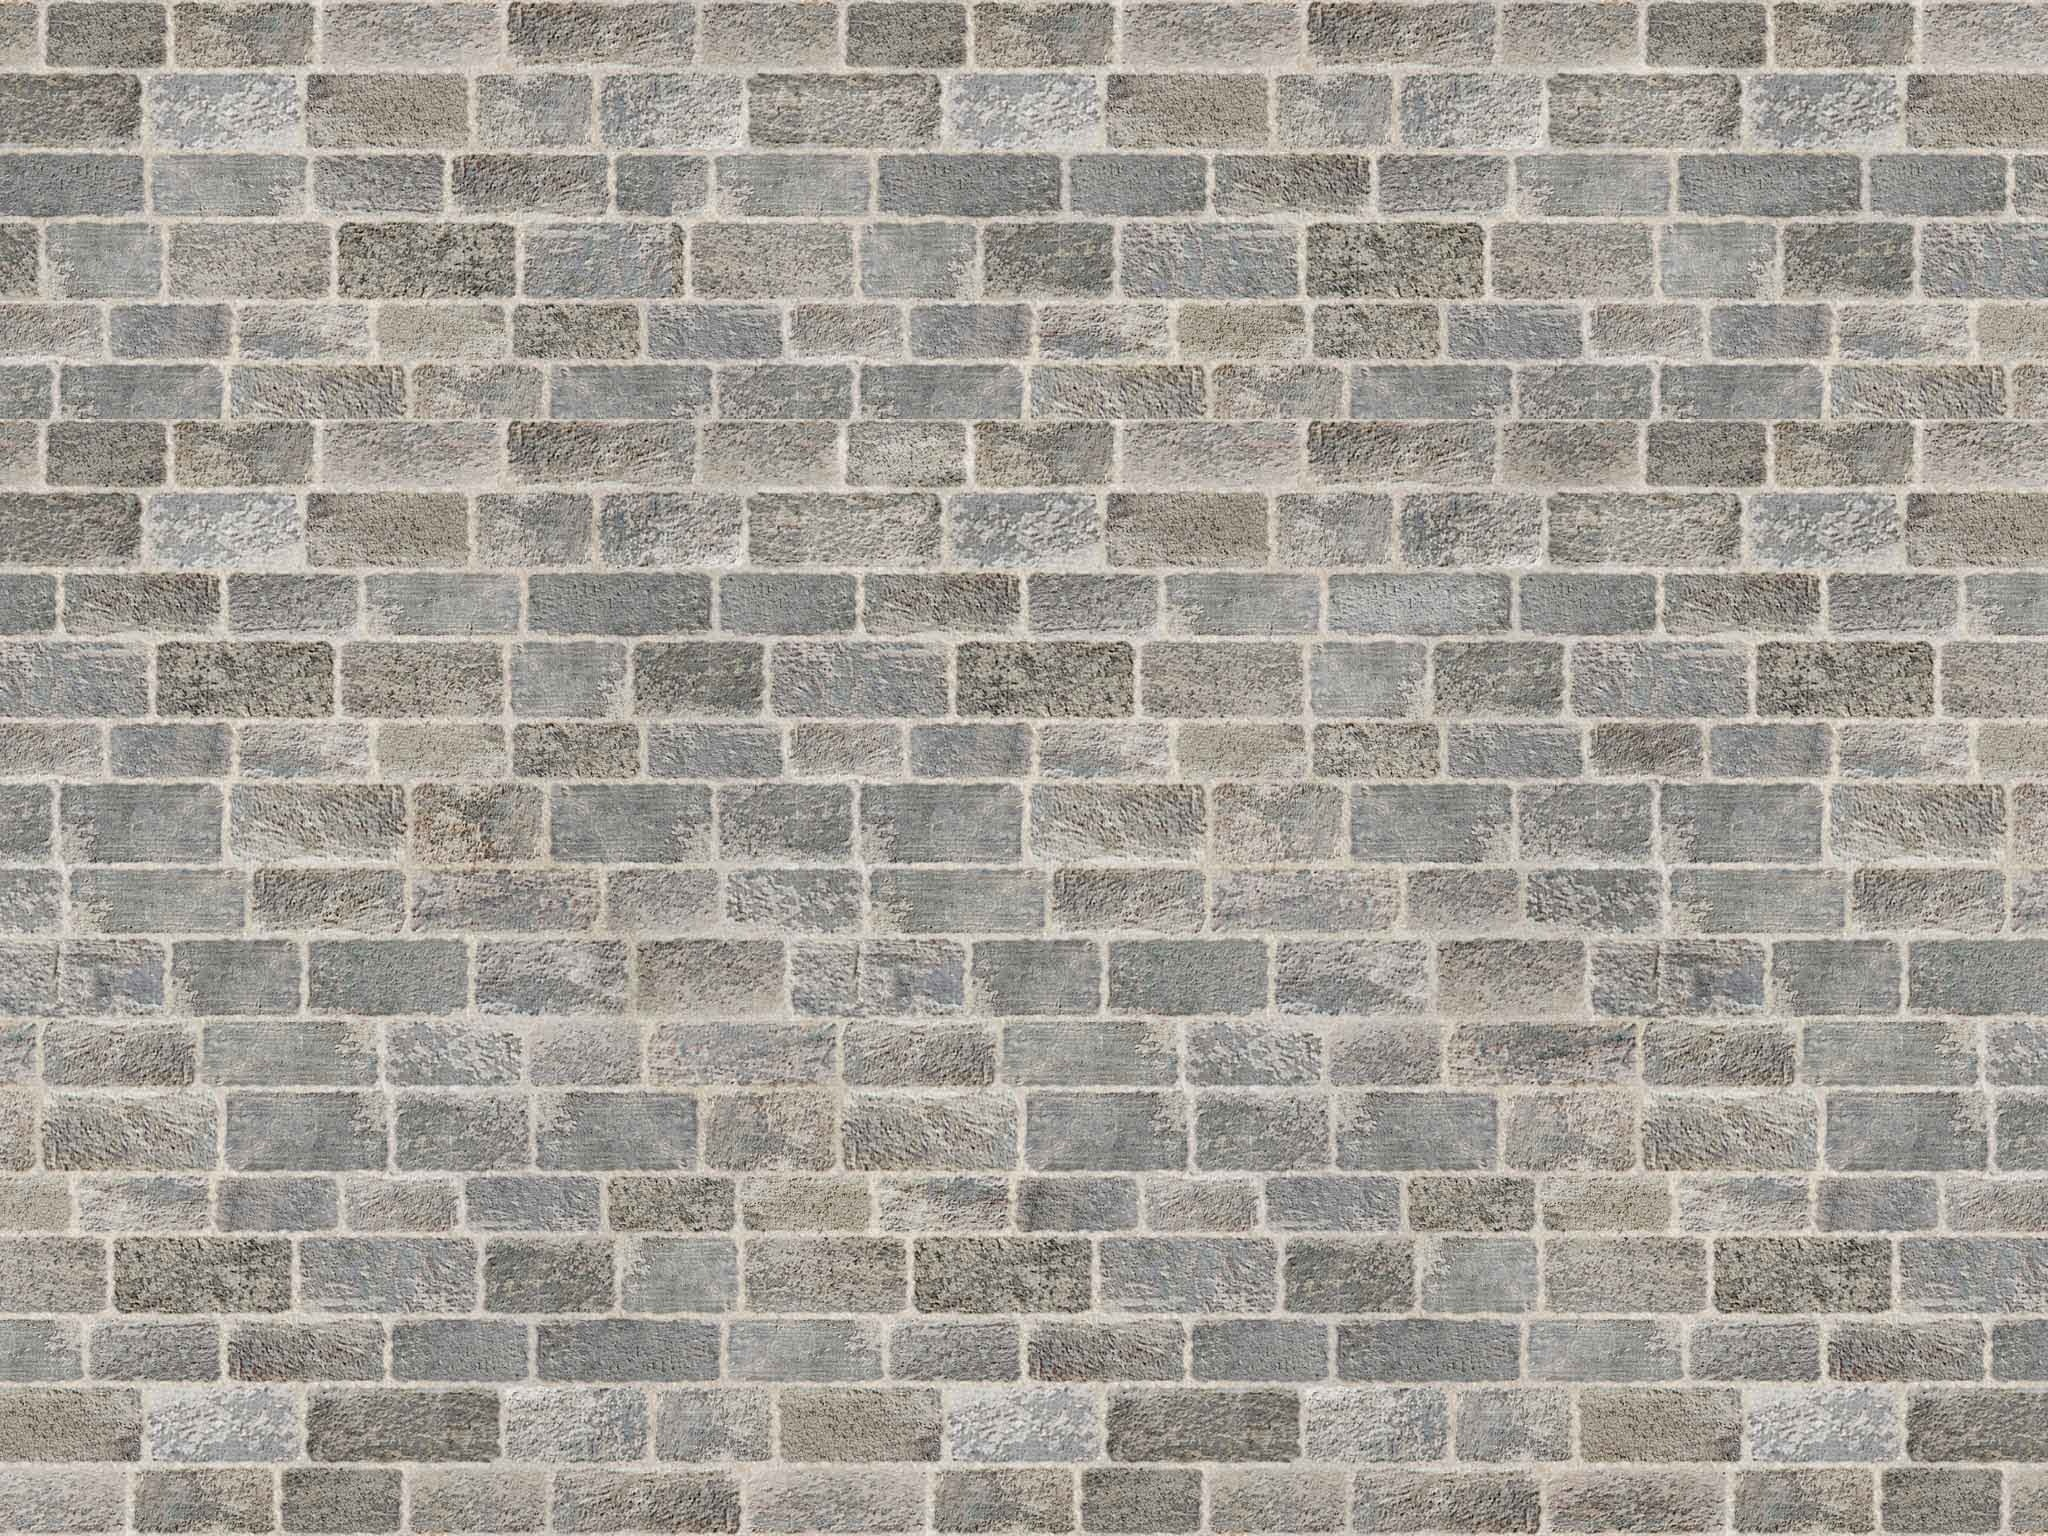 background-brick-bricks-220182.jpg